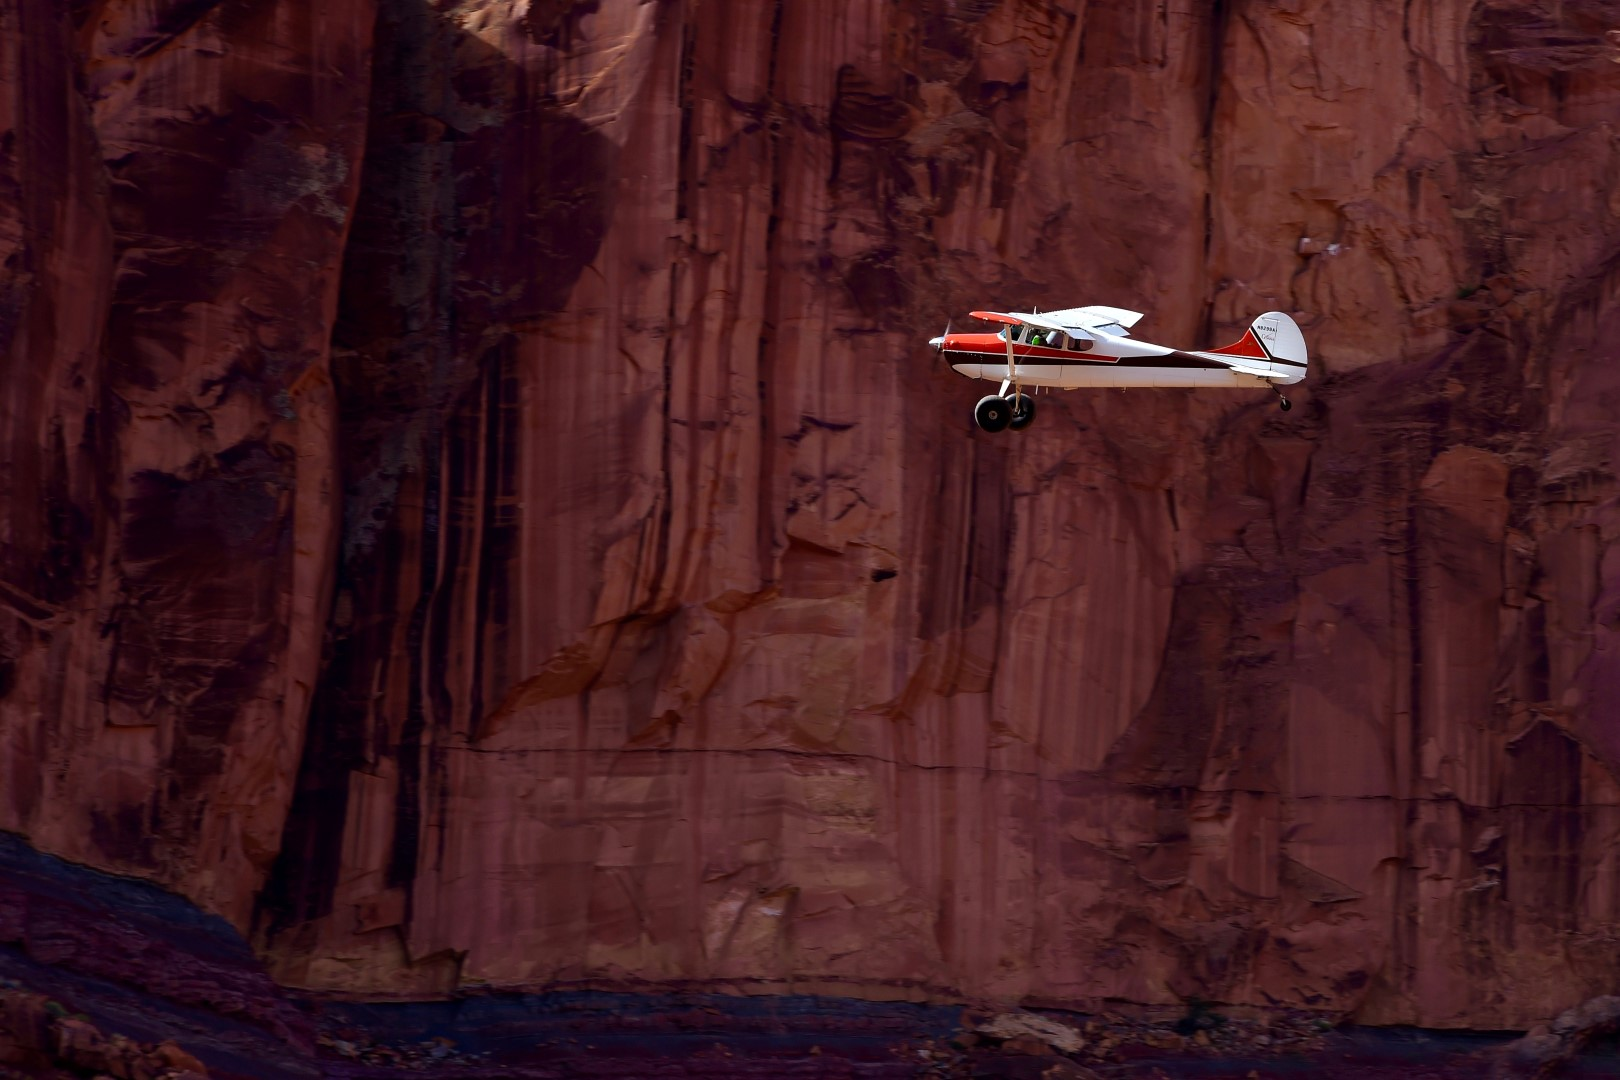 James Stevenson maneuvers in the canyon. Hidden Splendor is the perfect name for this gem of a backcountry airstrip, hidden deep inside a red rock canyon near a defunct uranium mine. The mine, originally named the Delta mine, was started in 1952 by Vernon Pick, an electrician from Minnesota. Pick sold the tremendously productive mine to Atlas Corporation, owned by Floyd Odlum, who renamed it Hidden Splendor. The landing strip was built during these boom years and has been used by aviators ever since. The mine became famous after a 1954 article in Life magazine but Atlas abandoned it in 1957 after production dropped. Photo by Brady Lane.